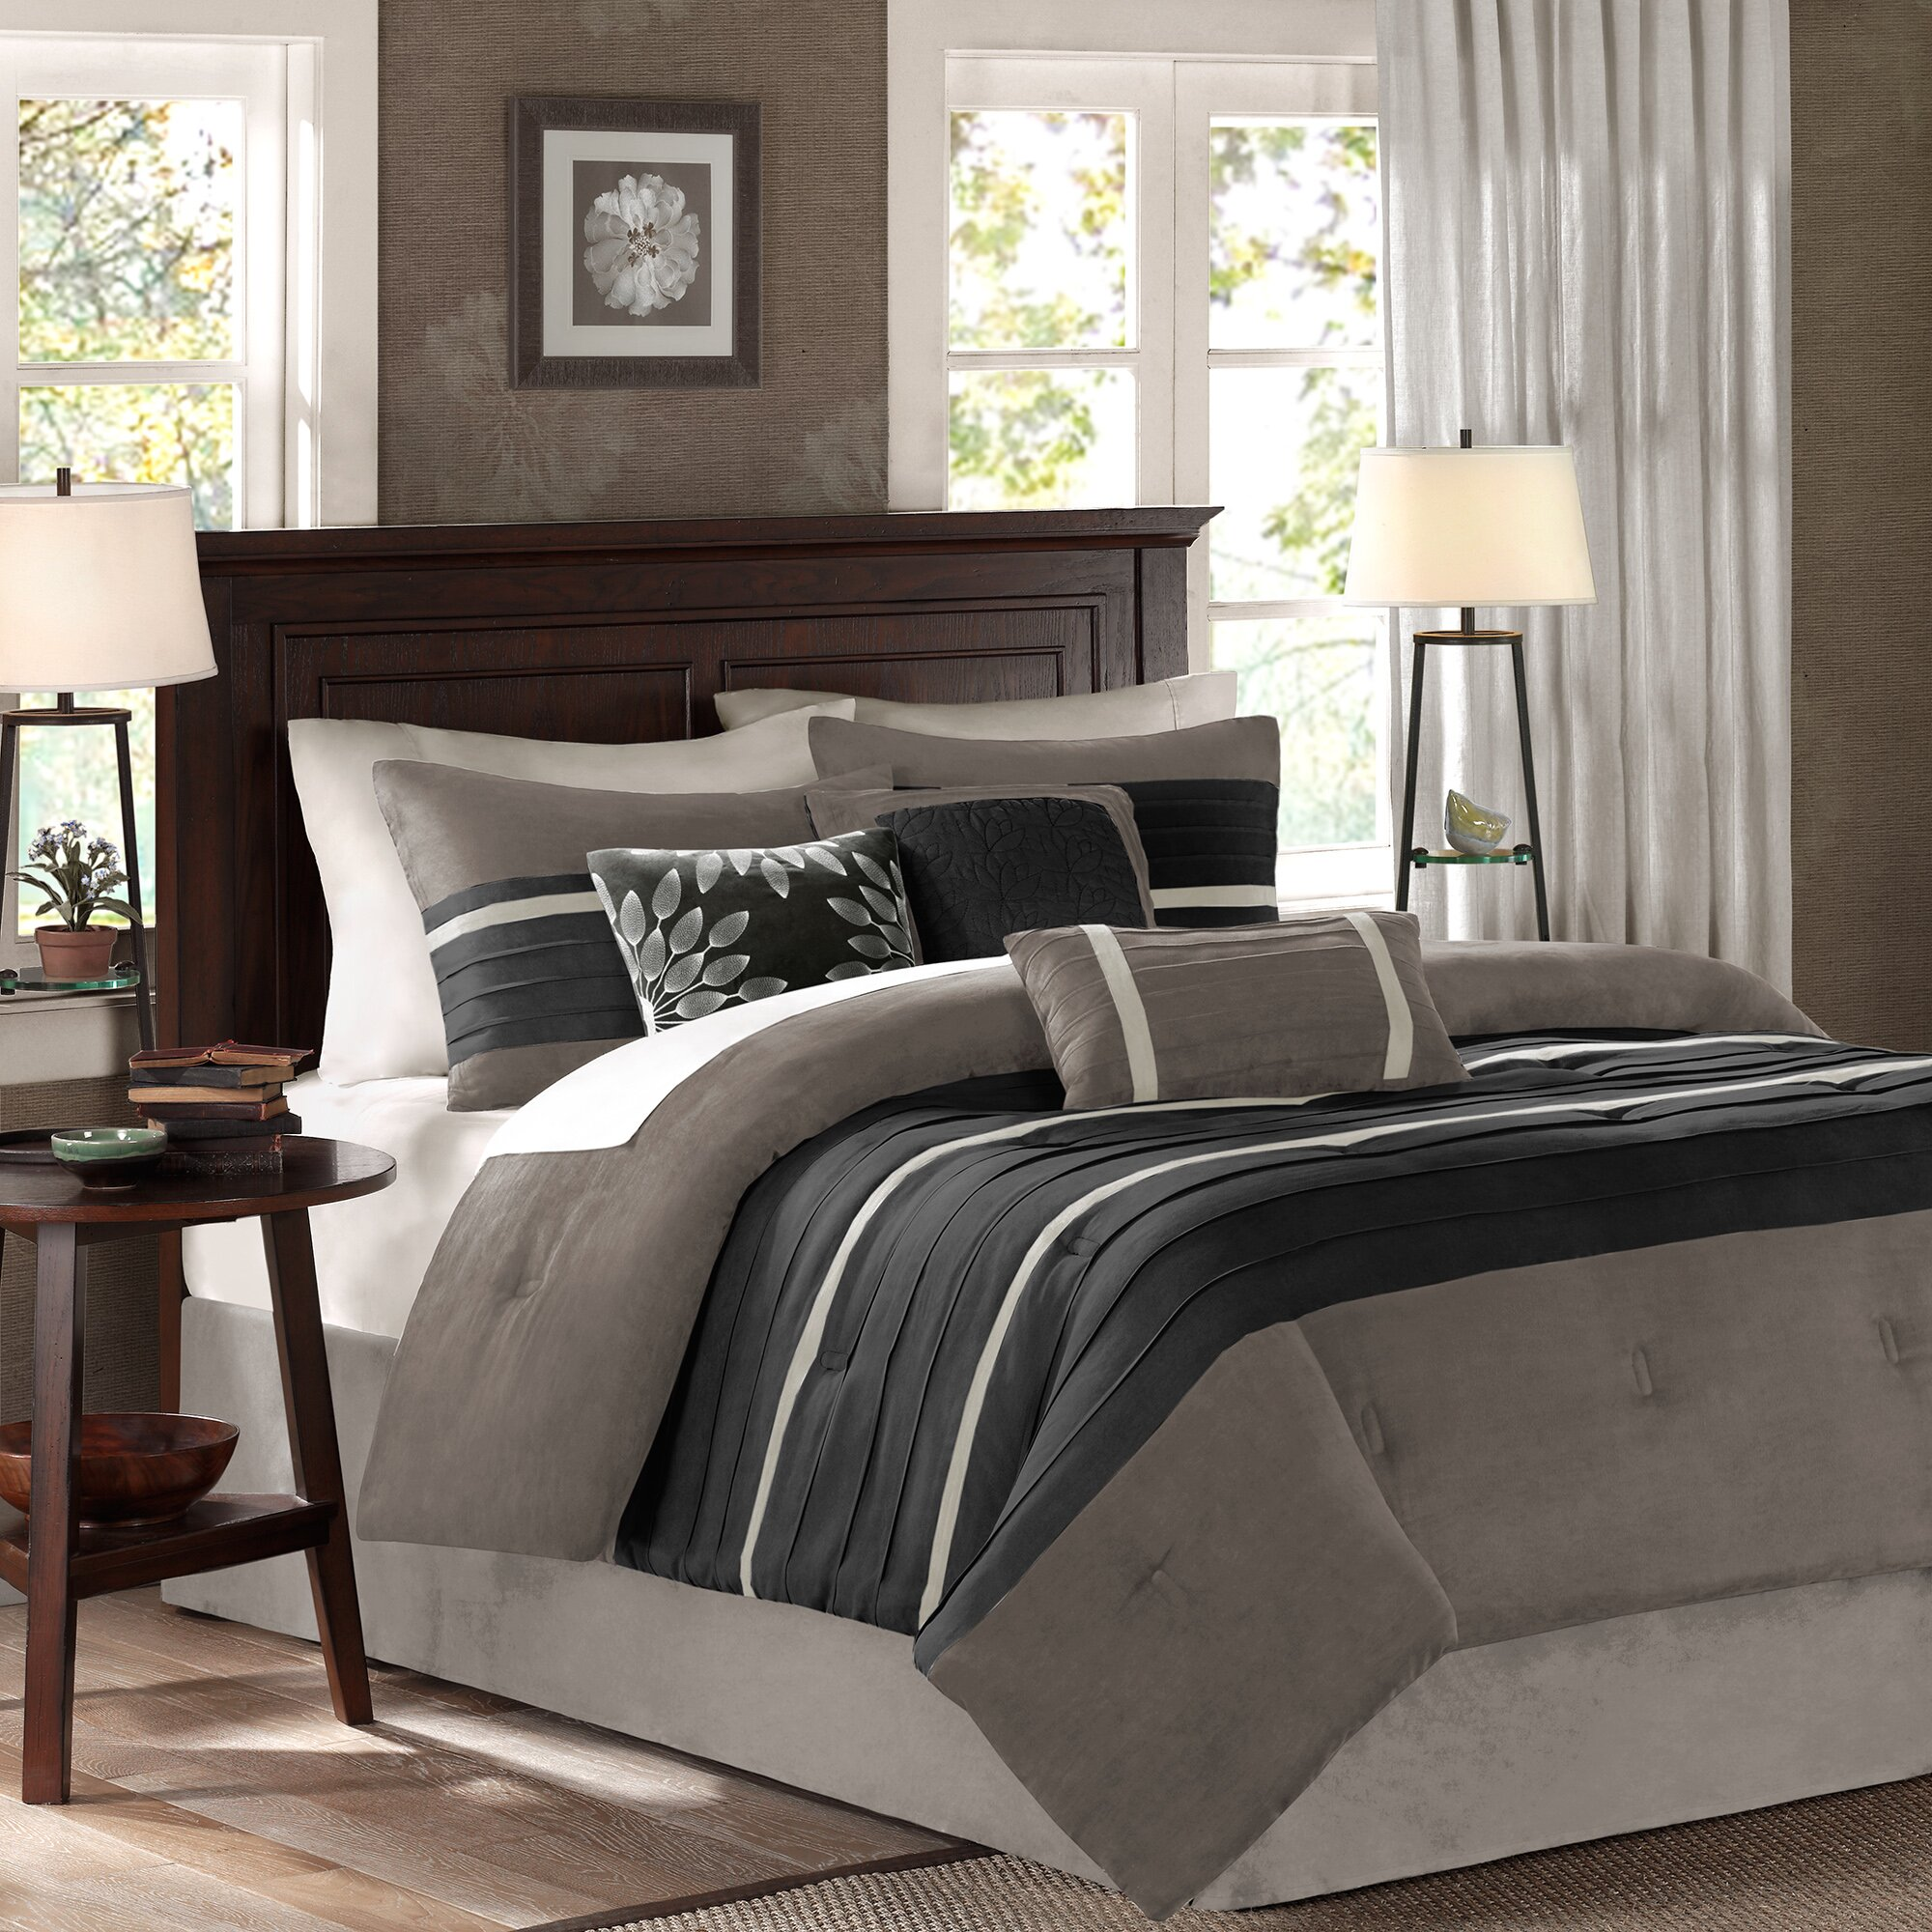 Comforter Size For King Bed Digihome